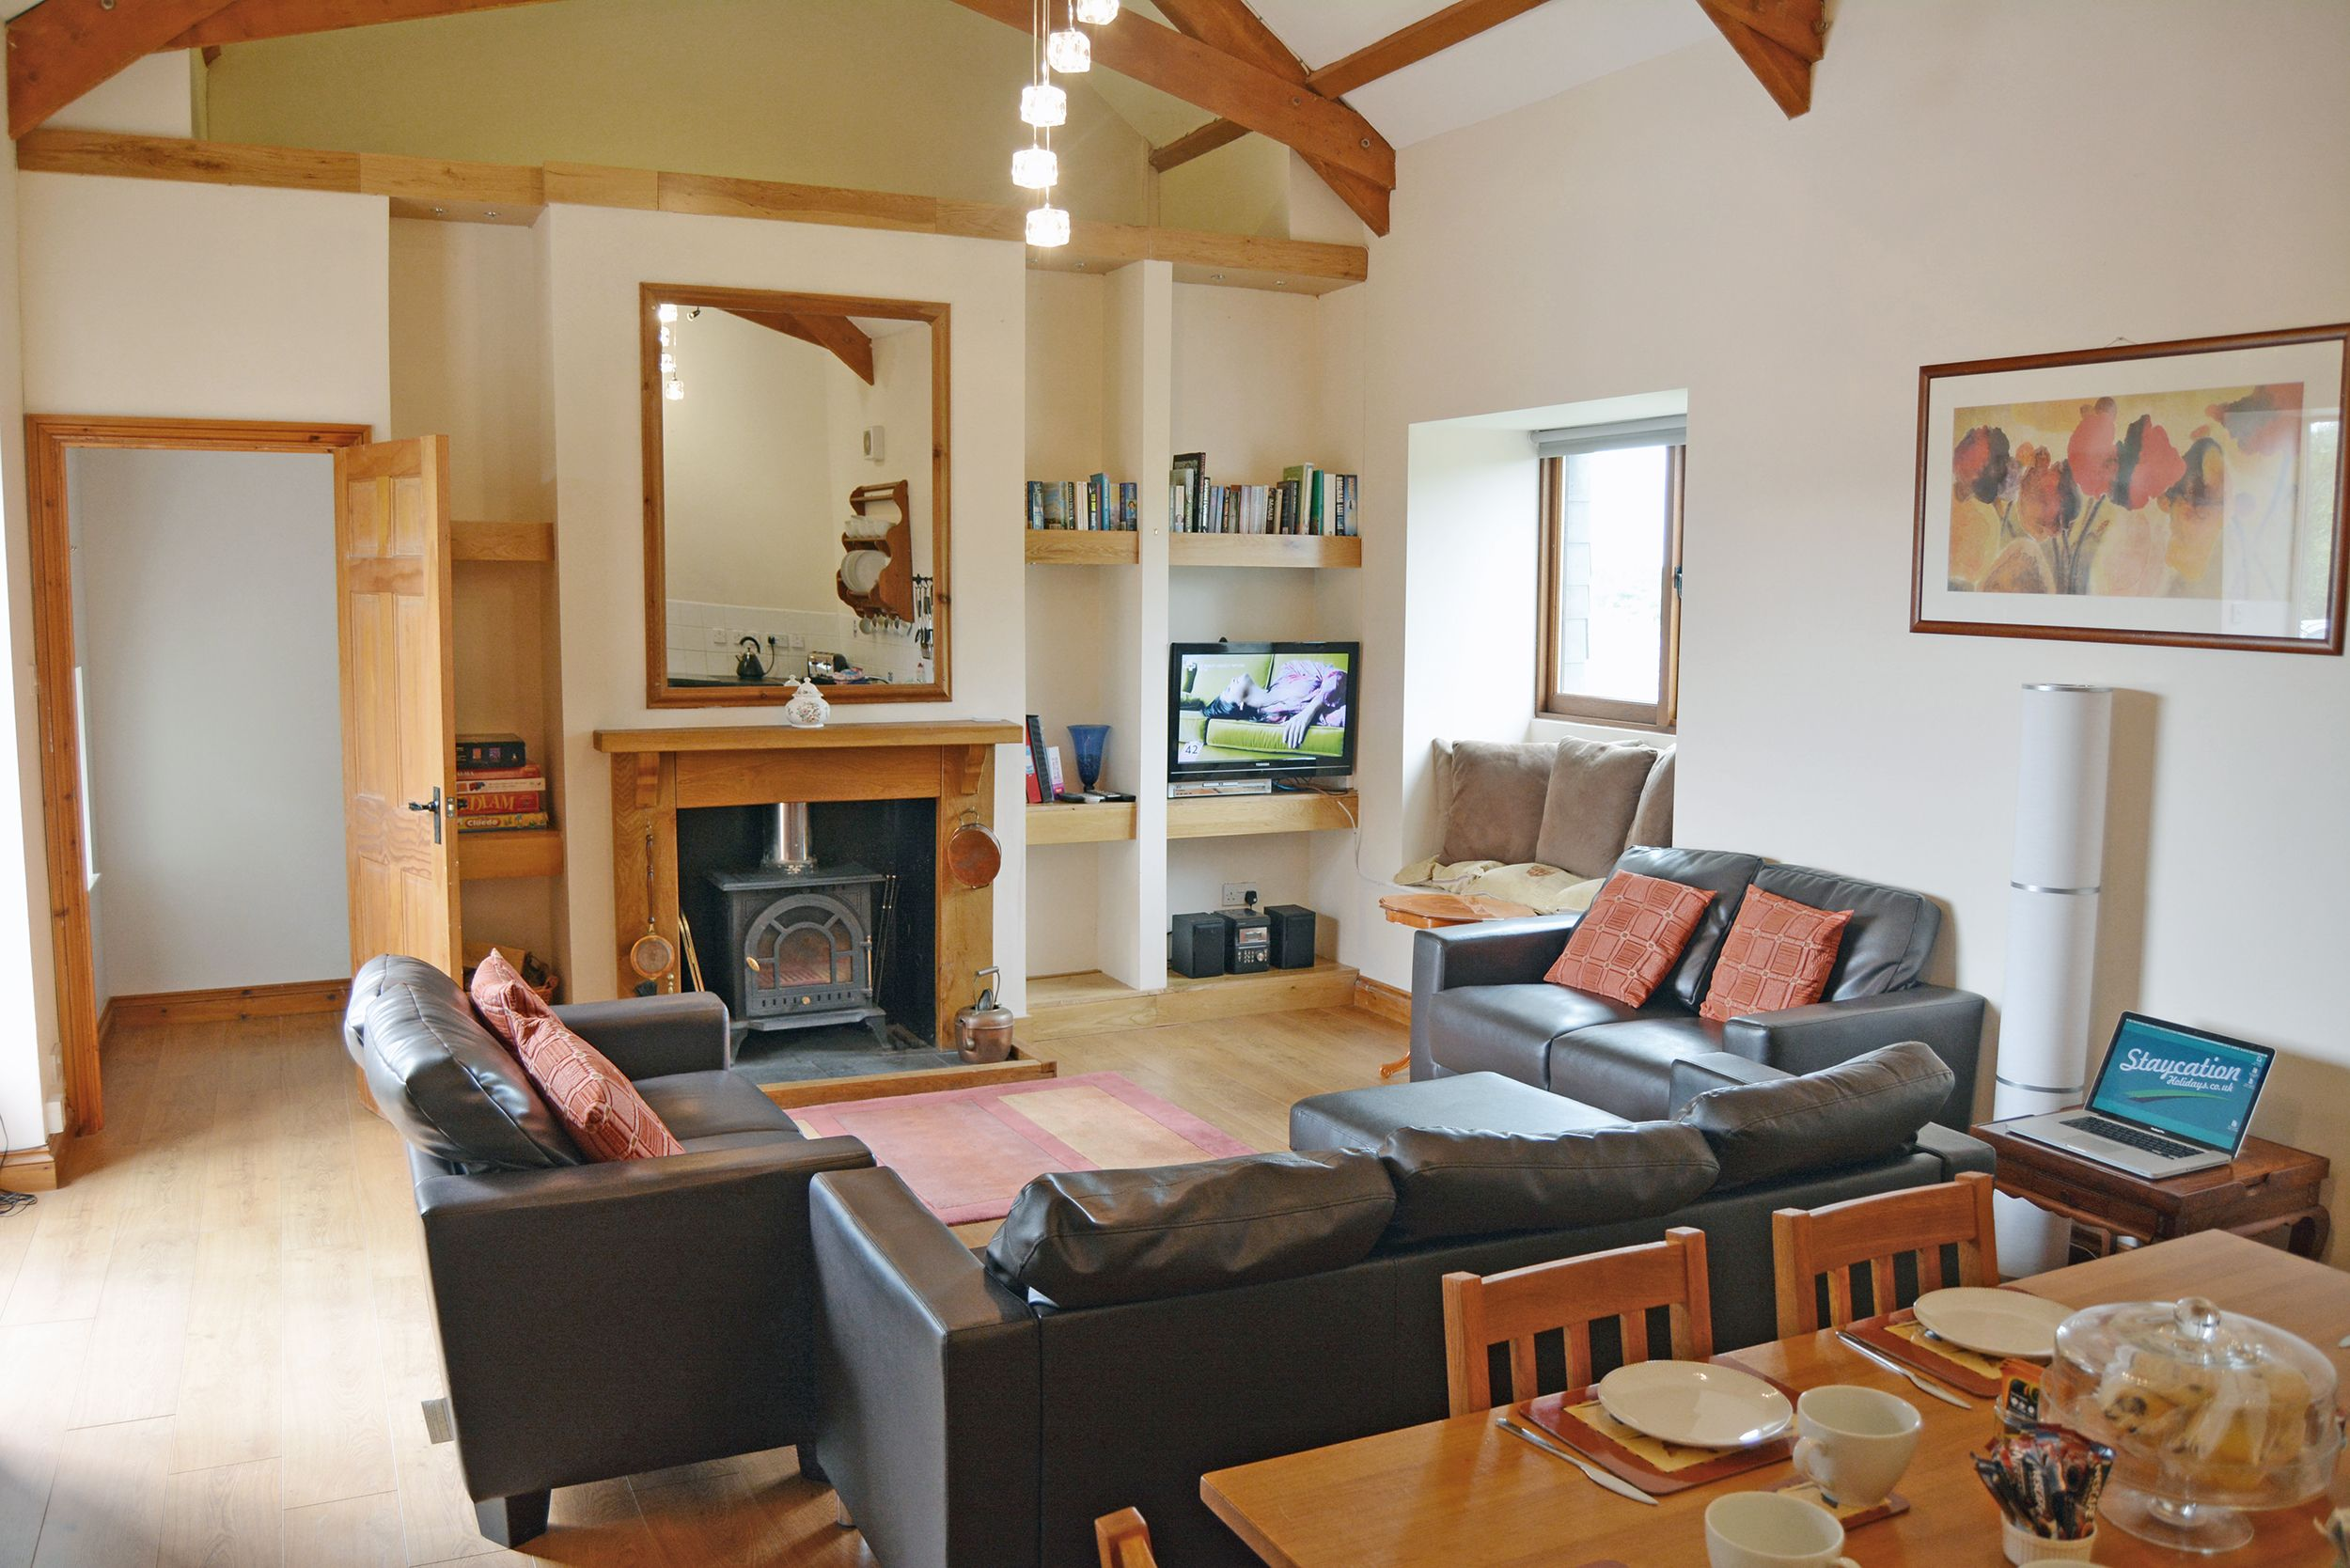 Ground floor: Spacious open plan sitting area with a wood burning stove